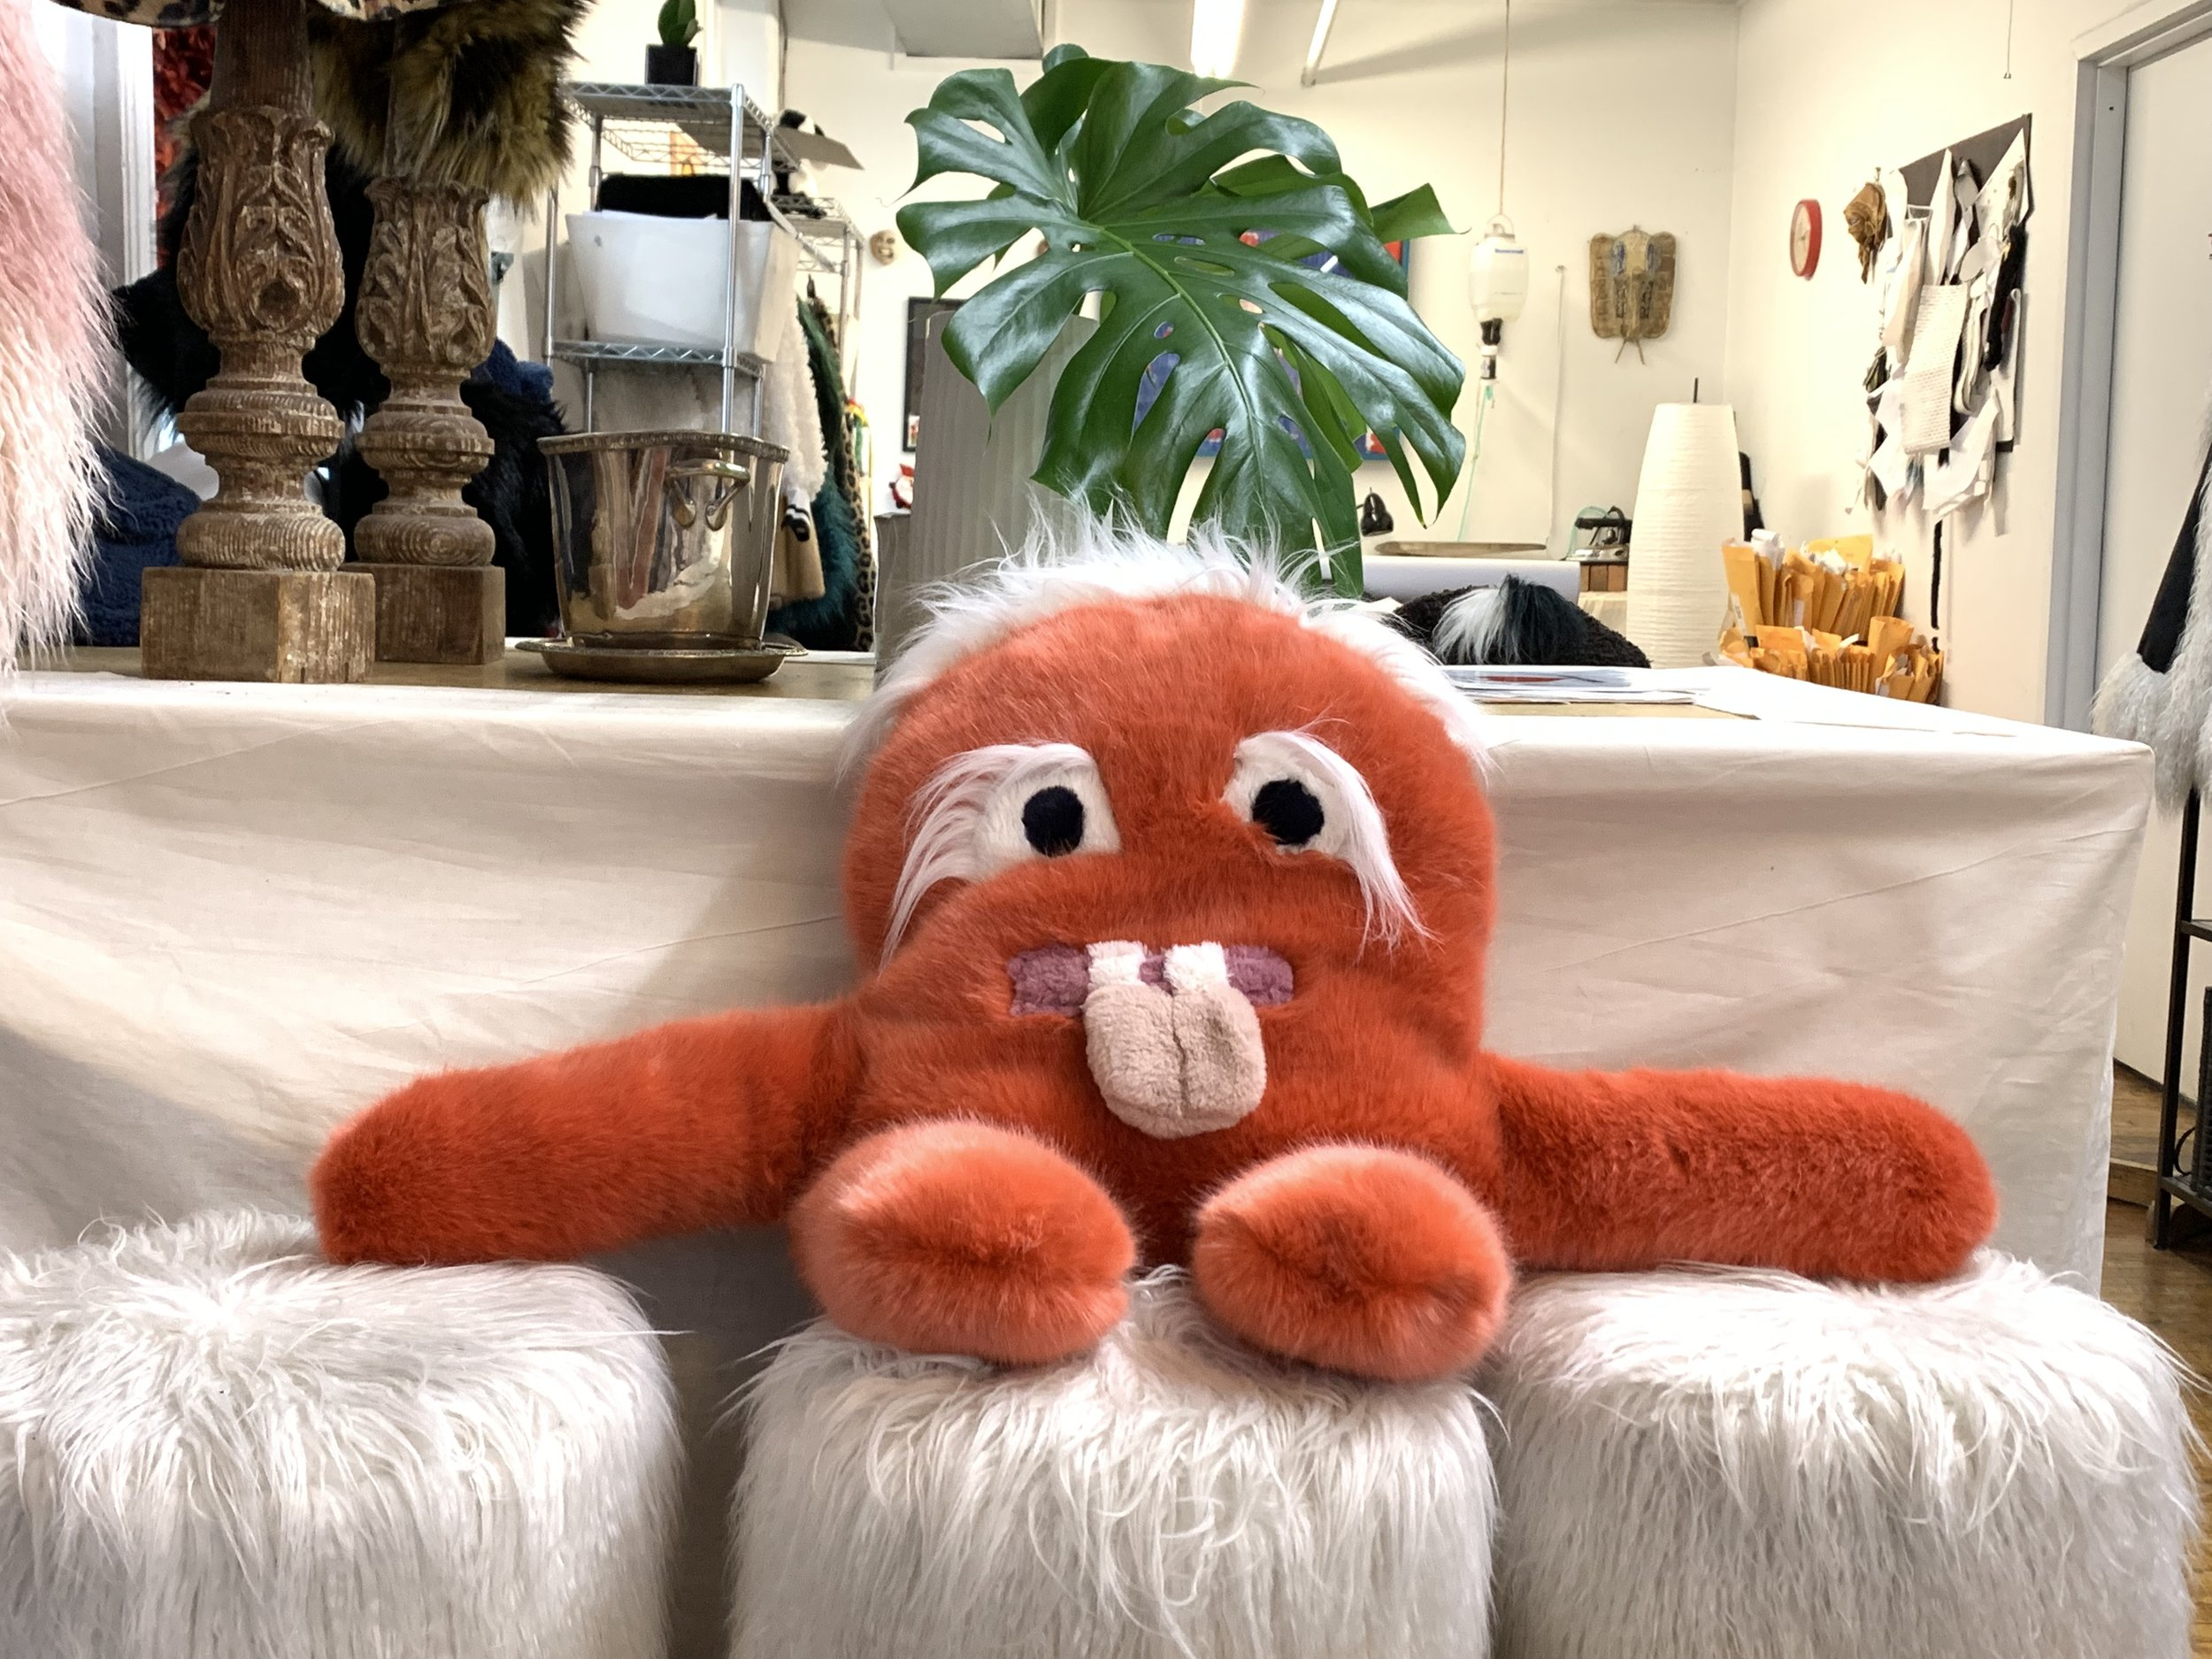 House of Fluff turns their excess materials into plush pals called Scrappys. Here one lounges at the brand's New York City atelier.